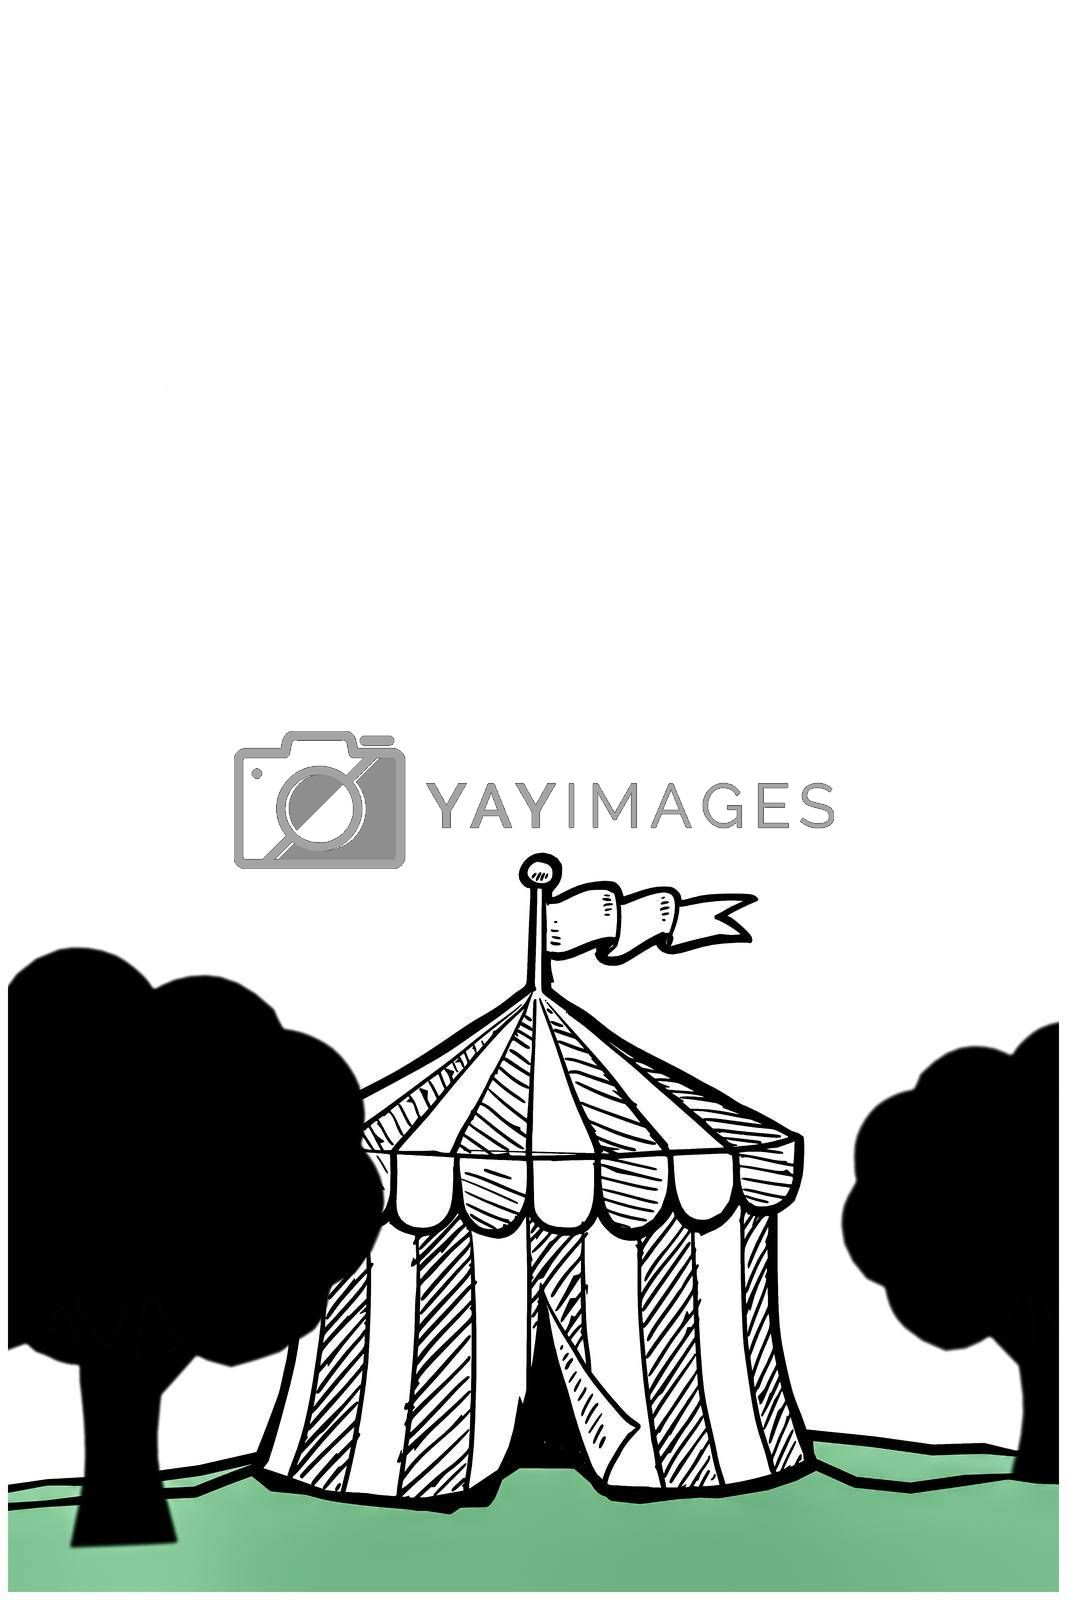 circus tent isolated on white background 3d illustration